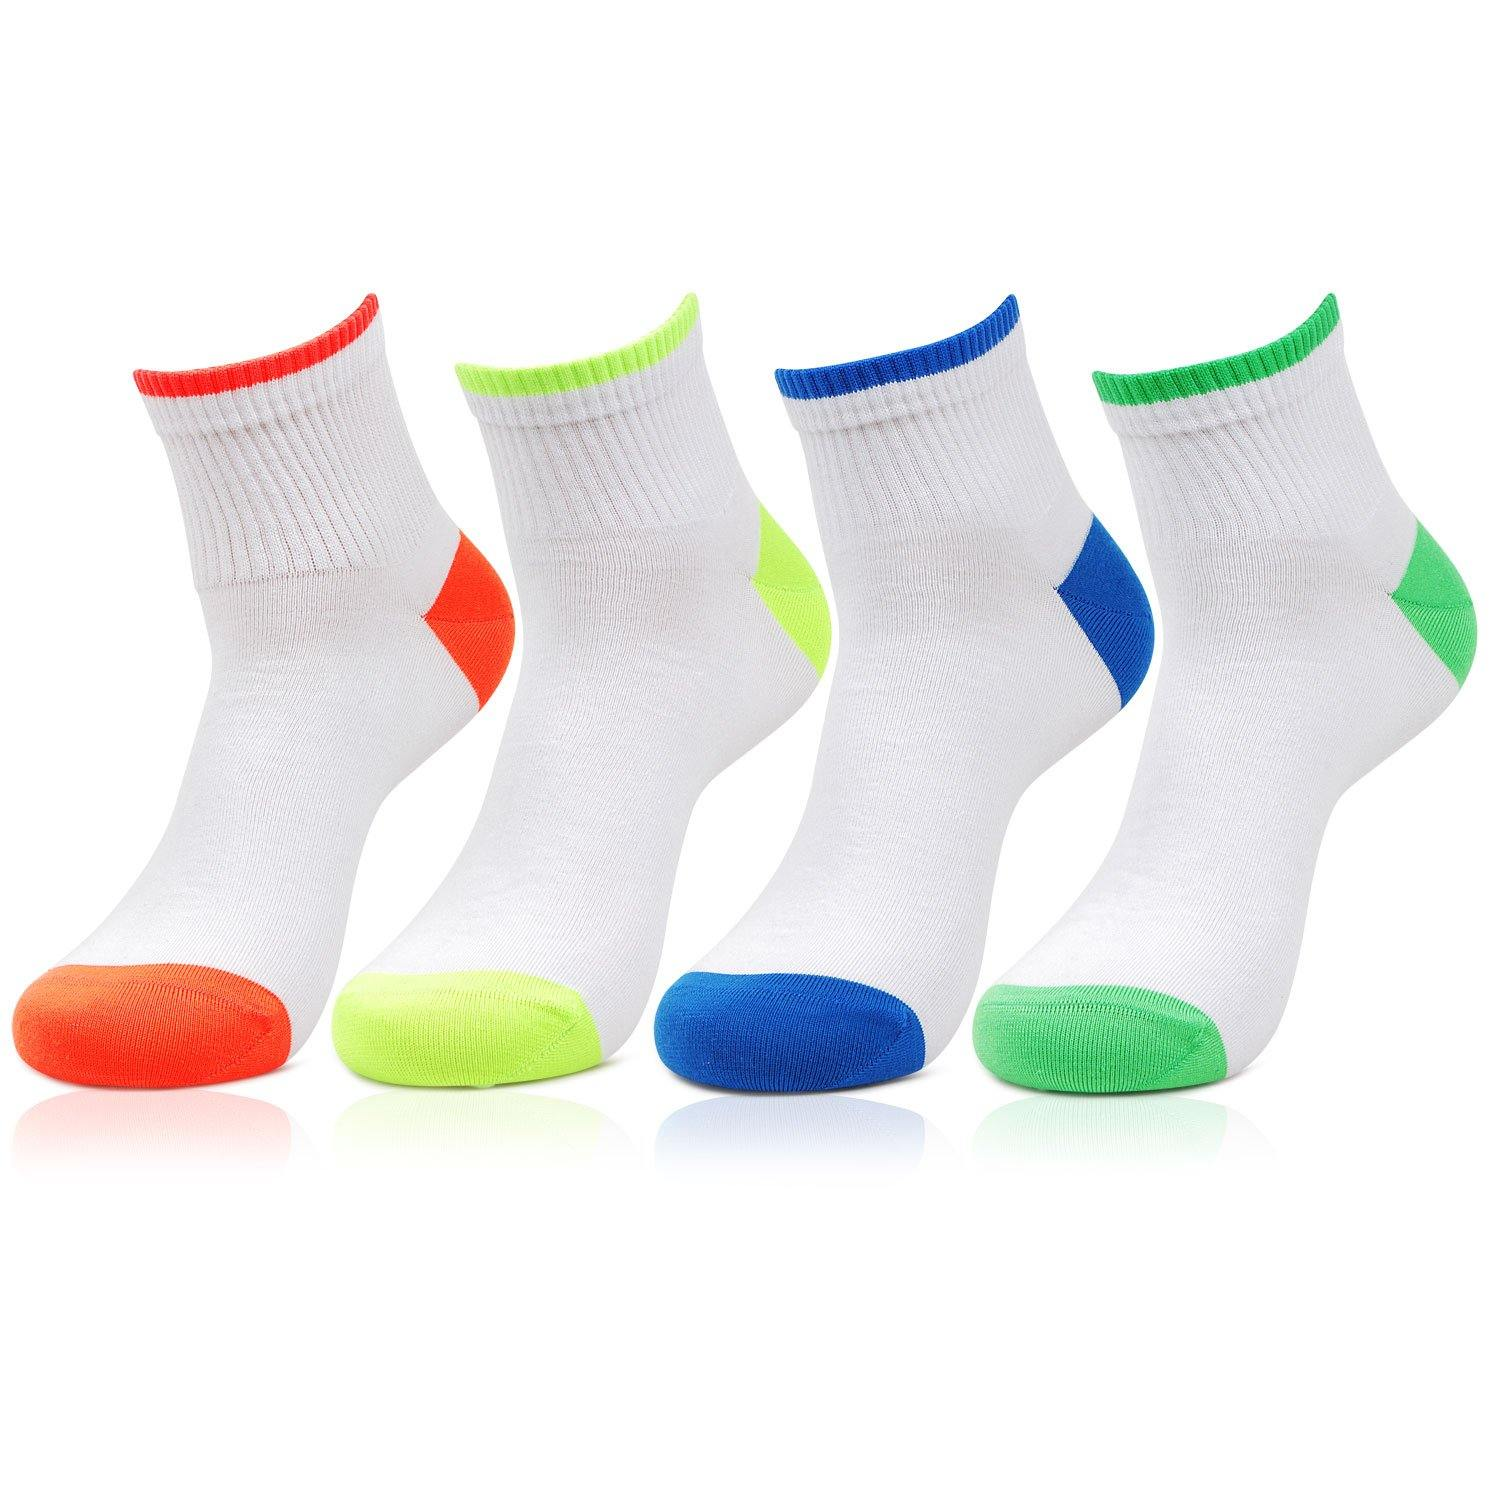 Men's Cotton White Ankle Socks- Pack of 4